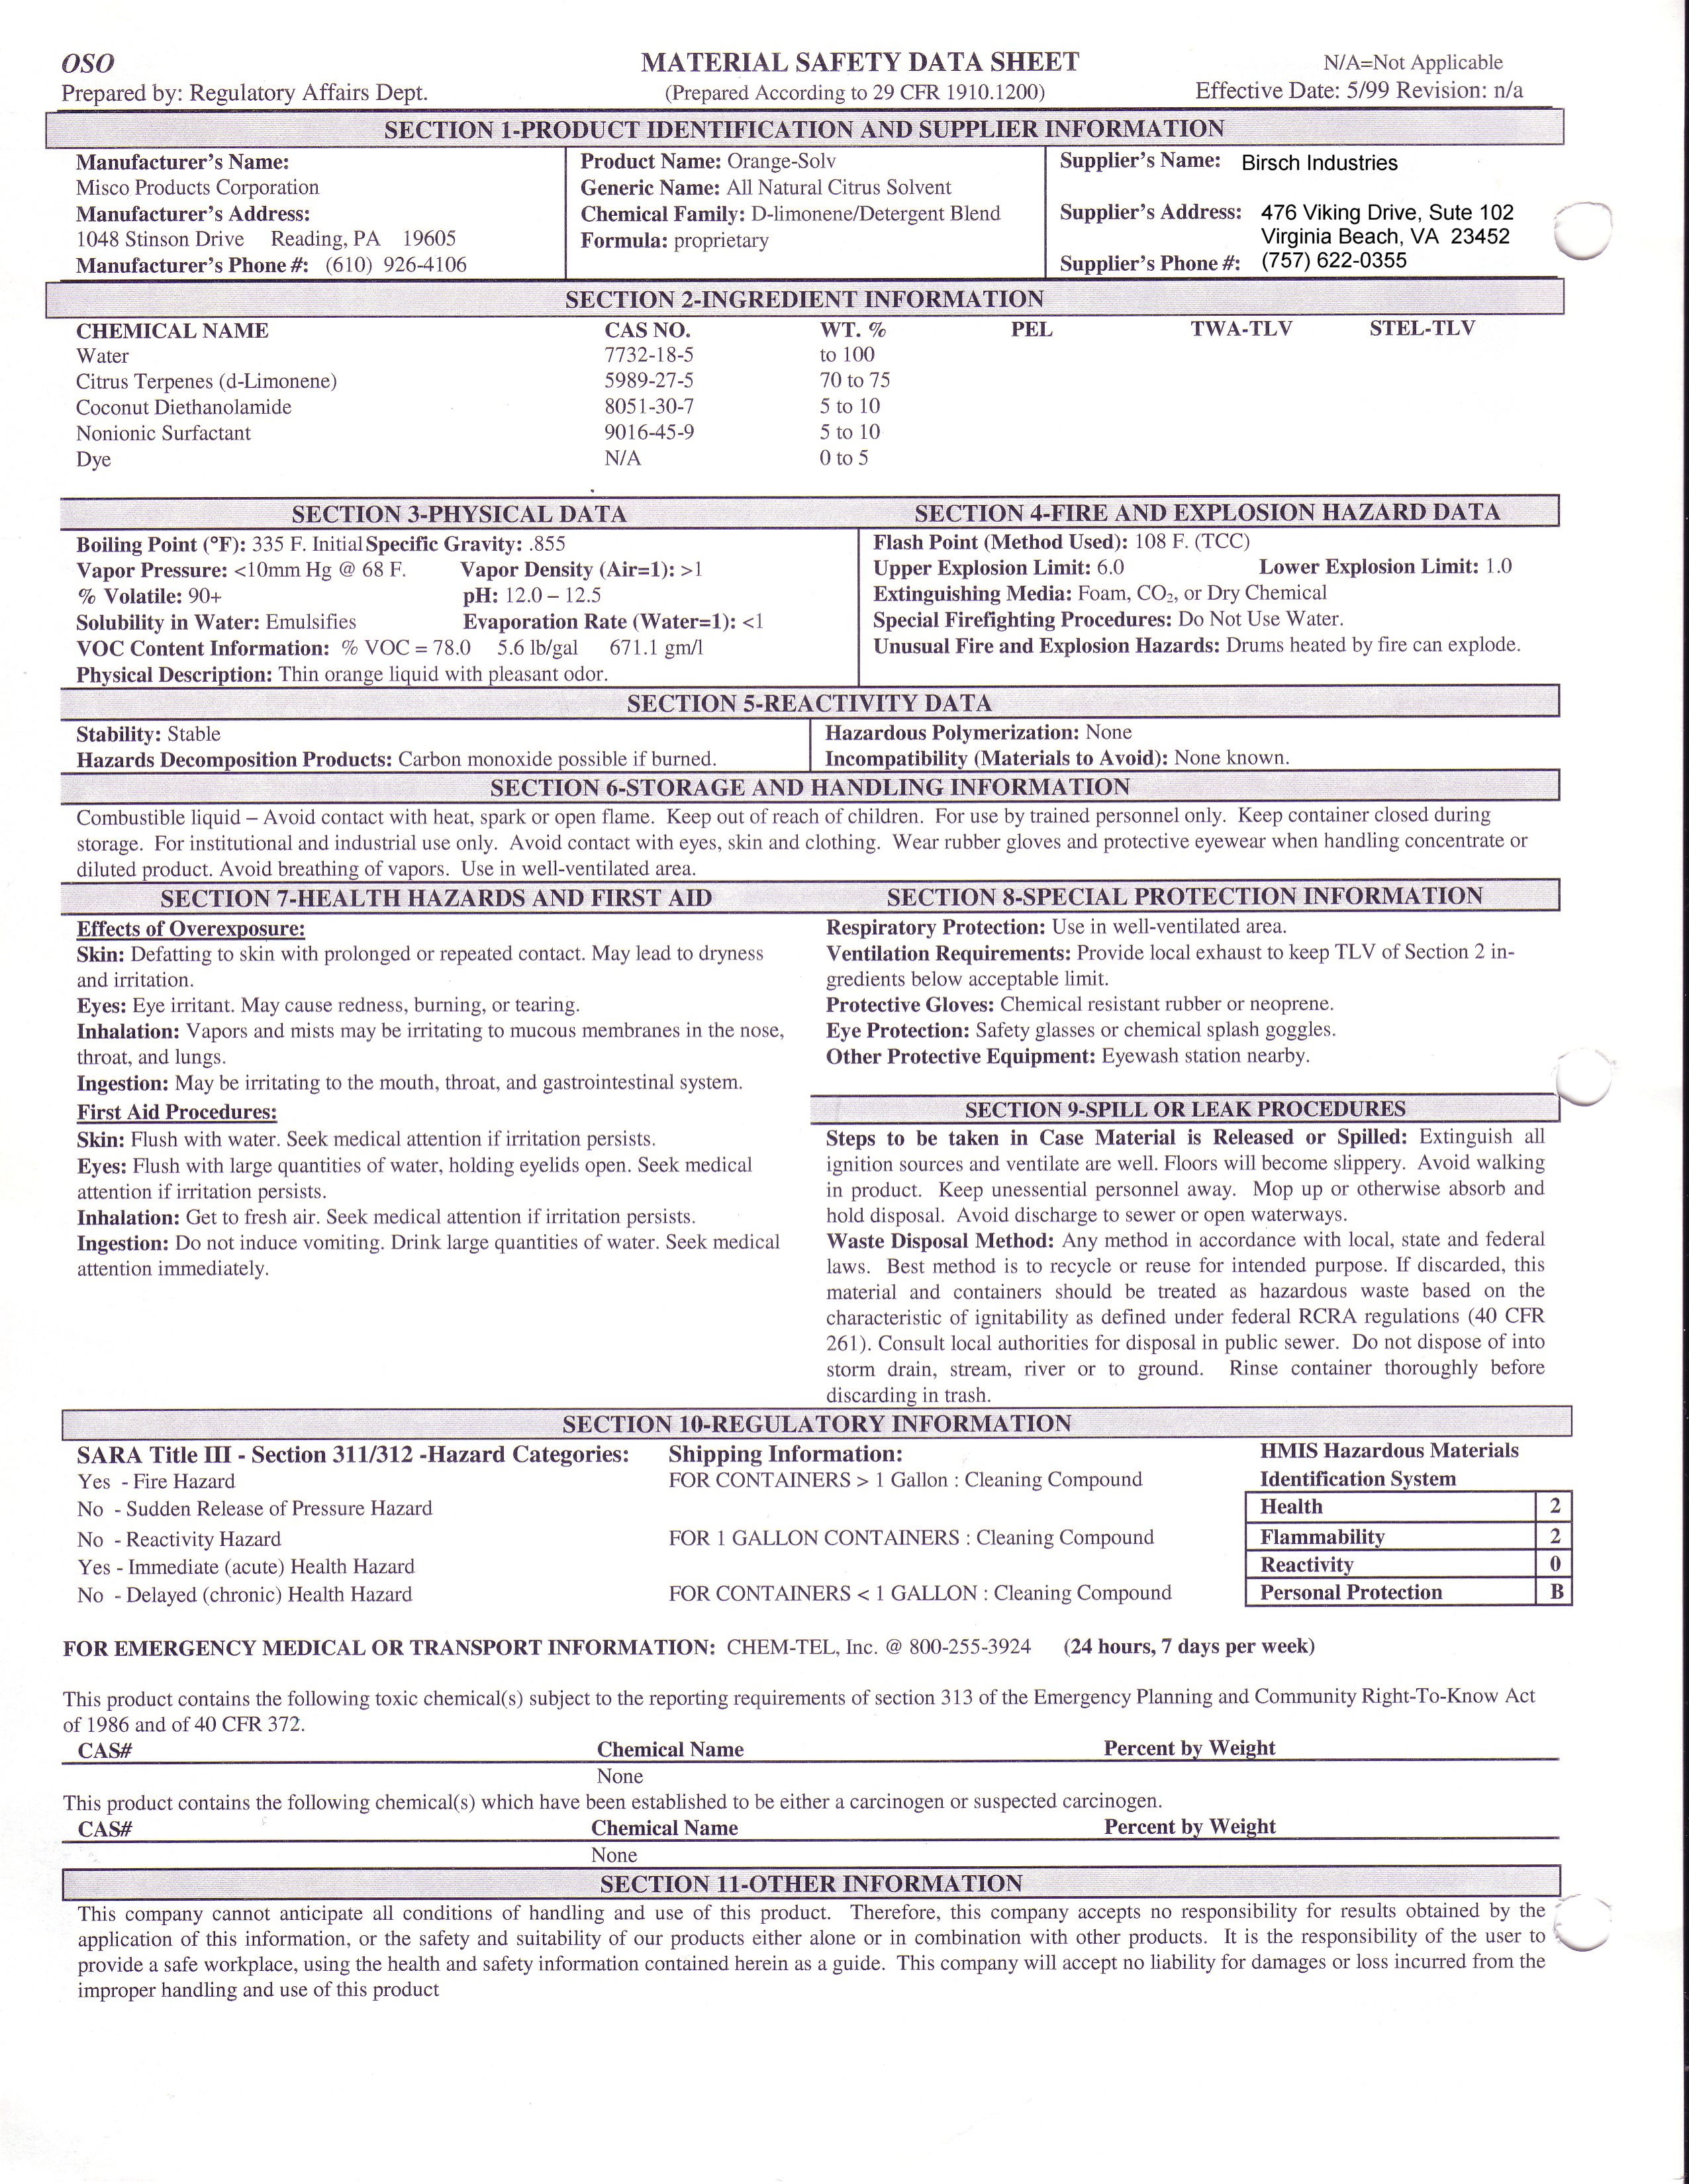 Spray Paint Msds Sheets Part - 25: Index Of /MSDS Sheets/Additional